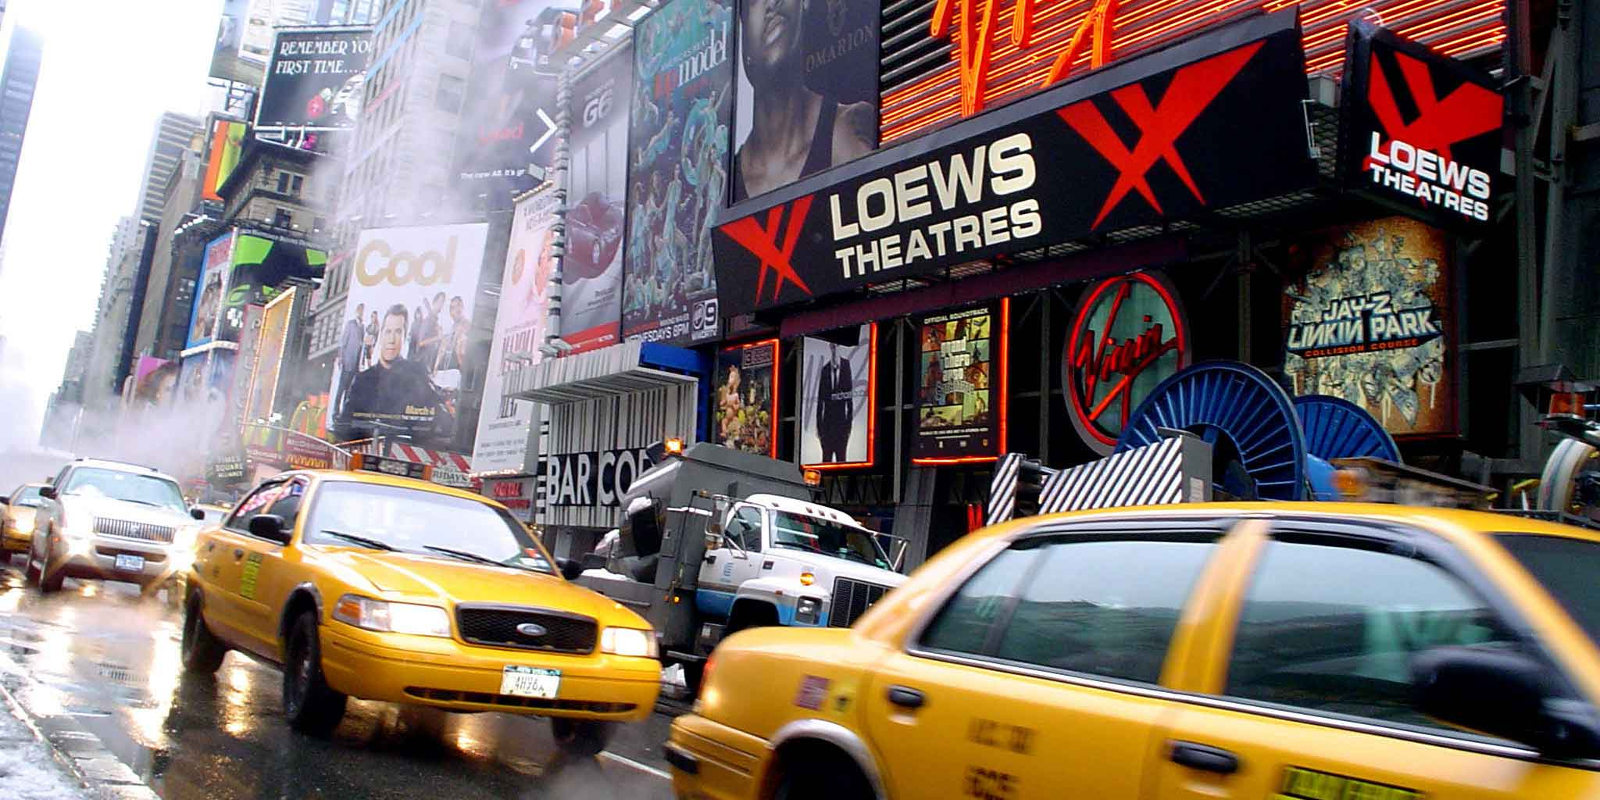 This is an image of traffic in front of Loews Theatres Cineplex Time Square